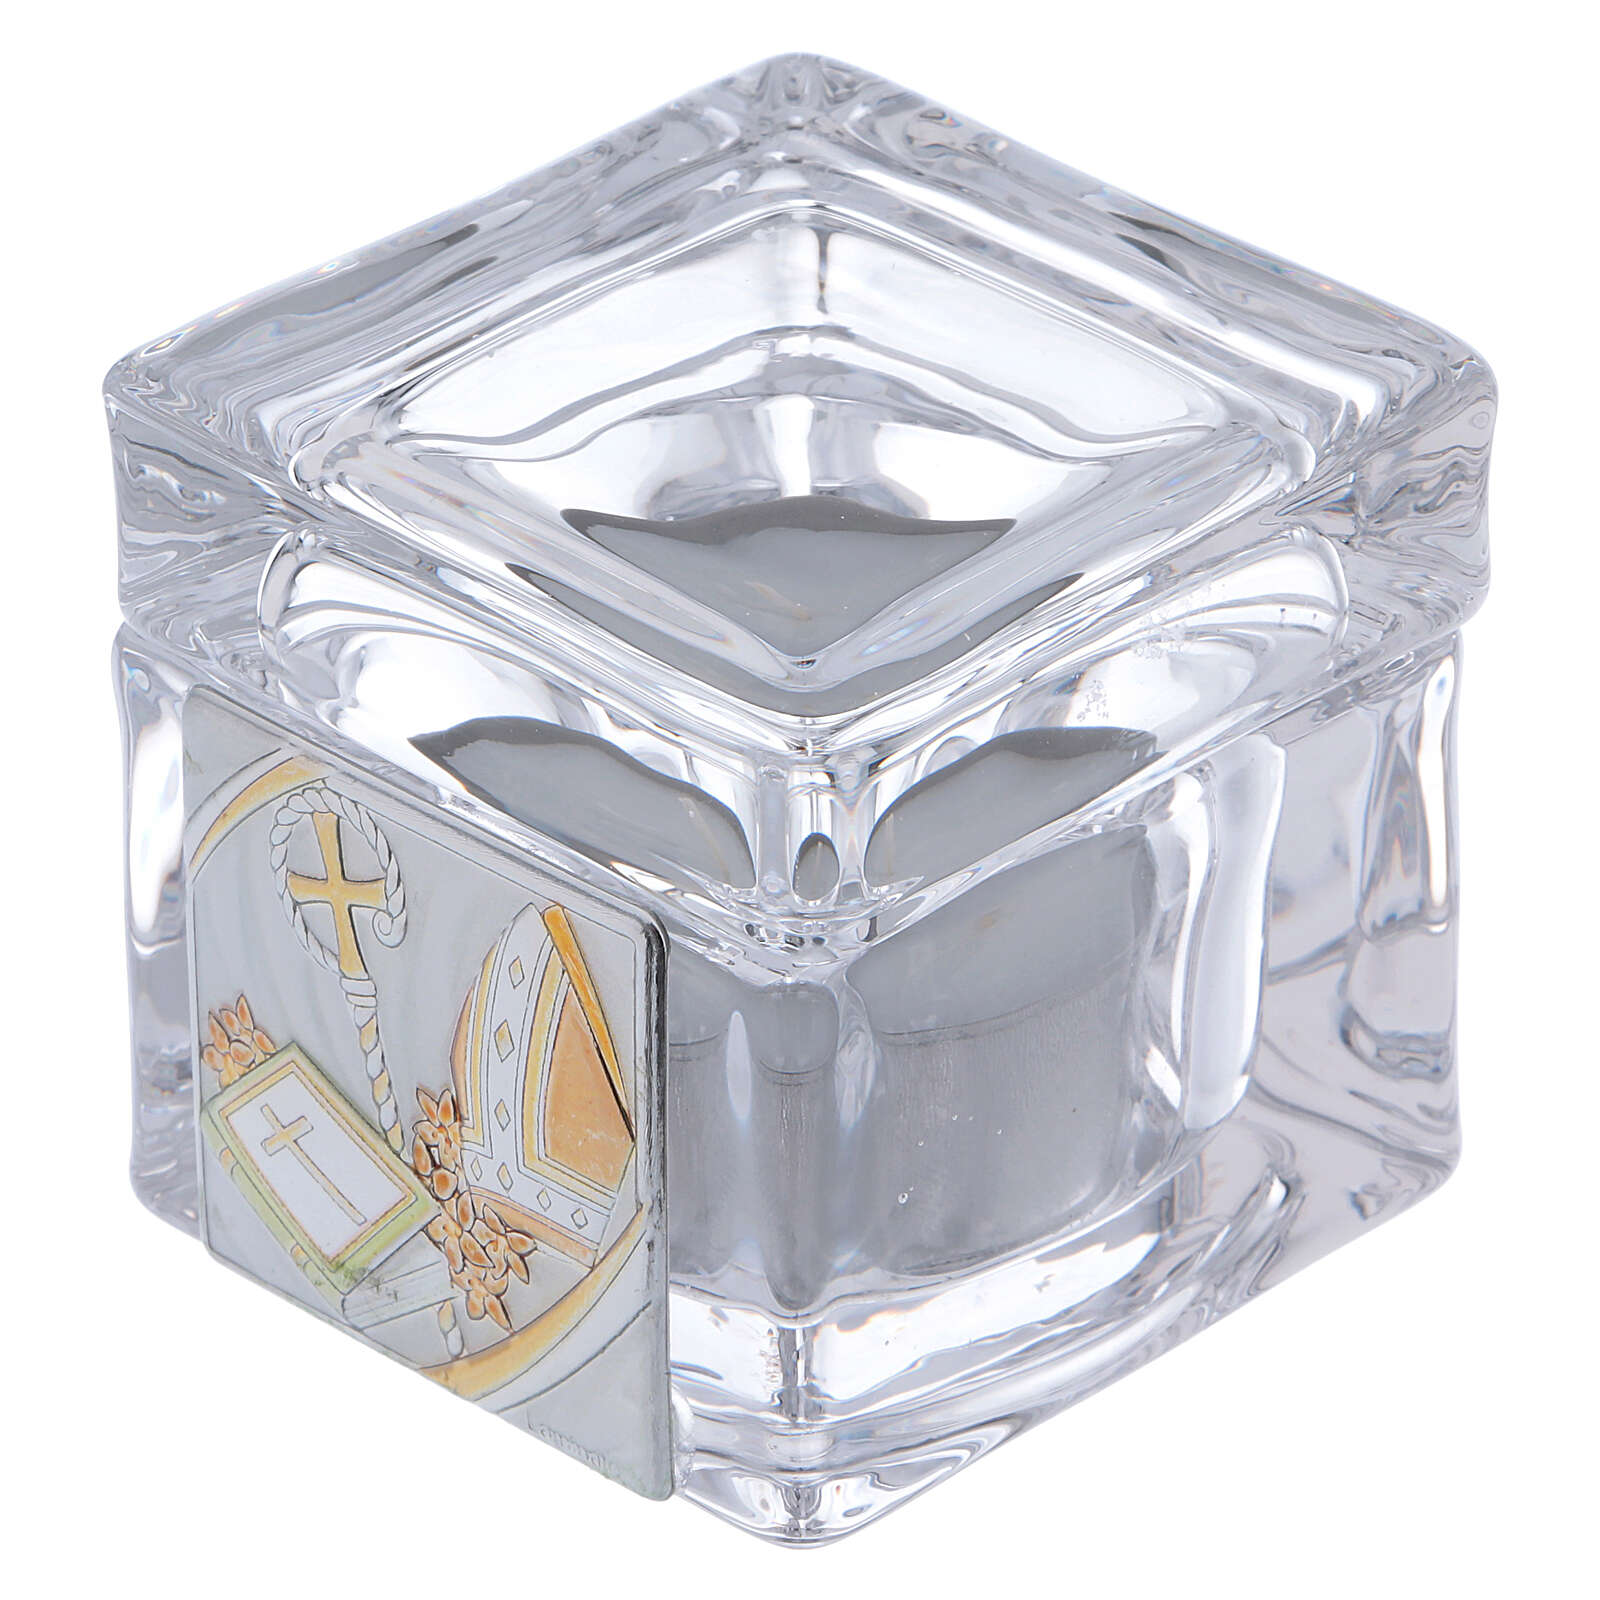 Confirmation souvenir box with tea light candle 2x2x2 in 4